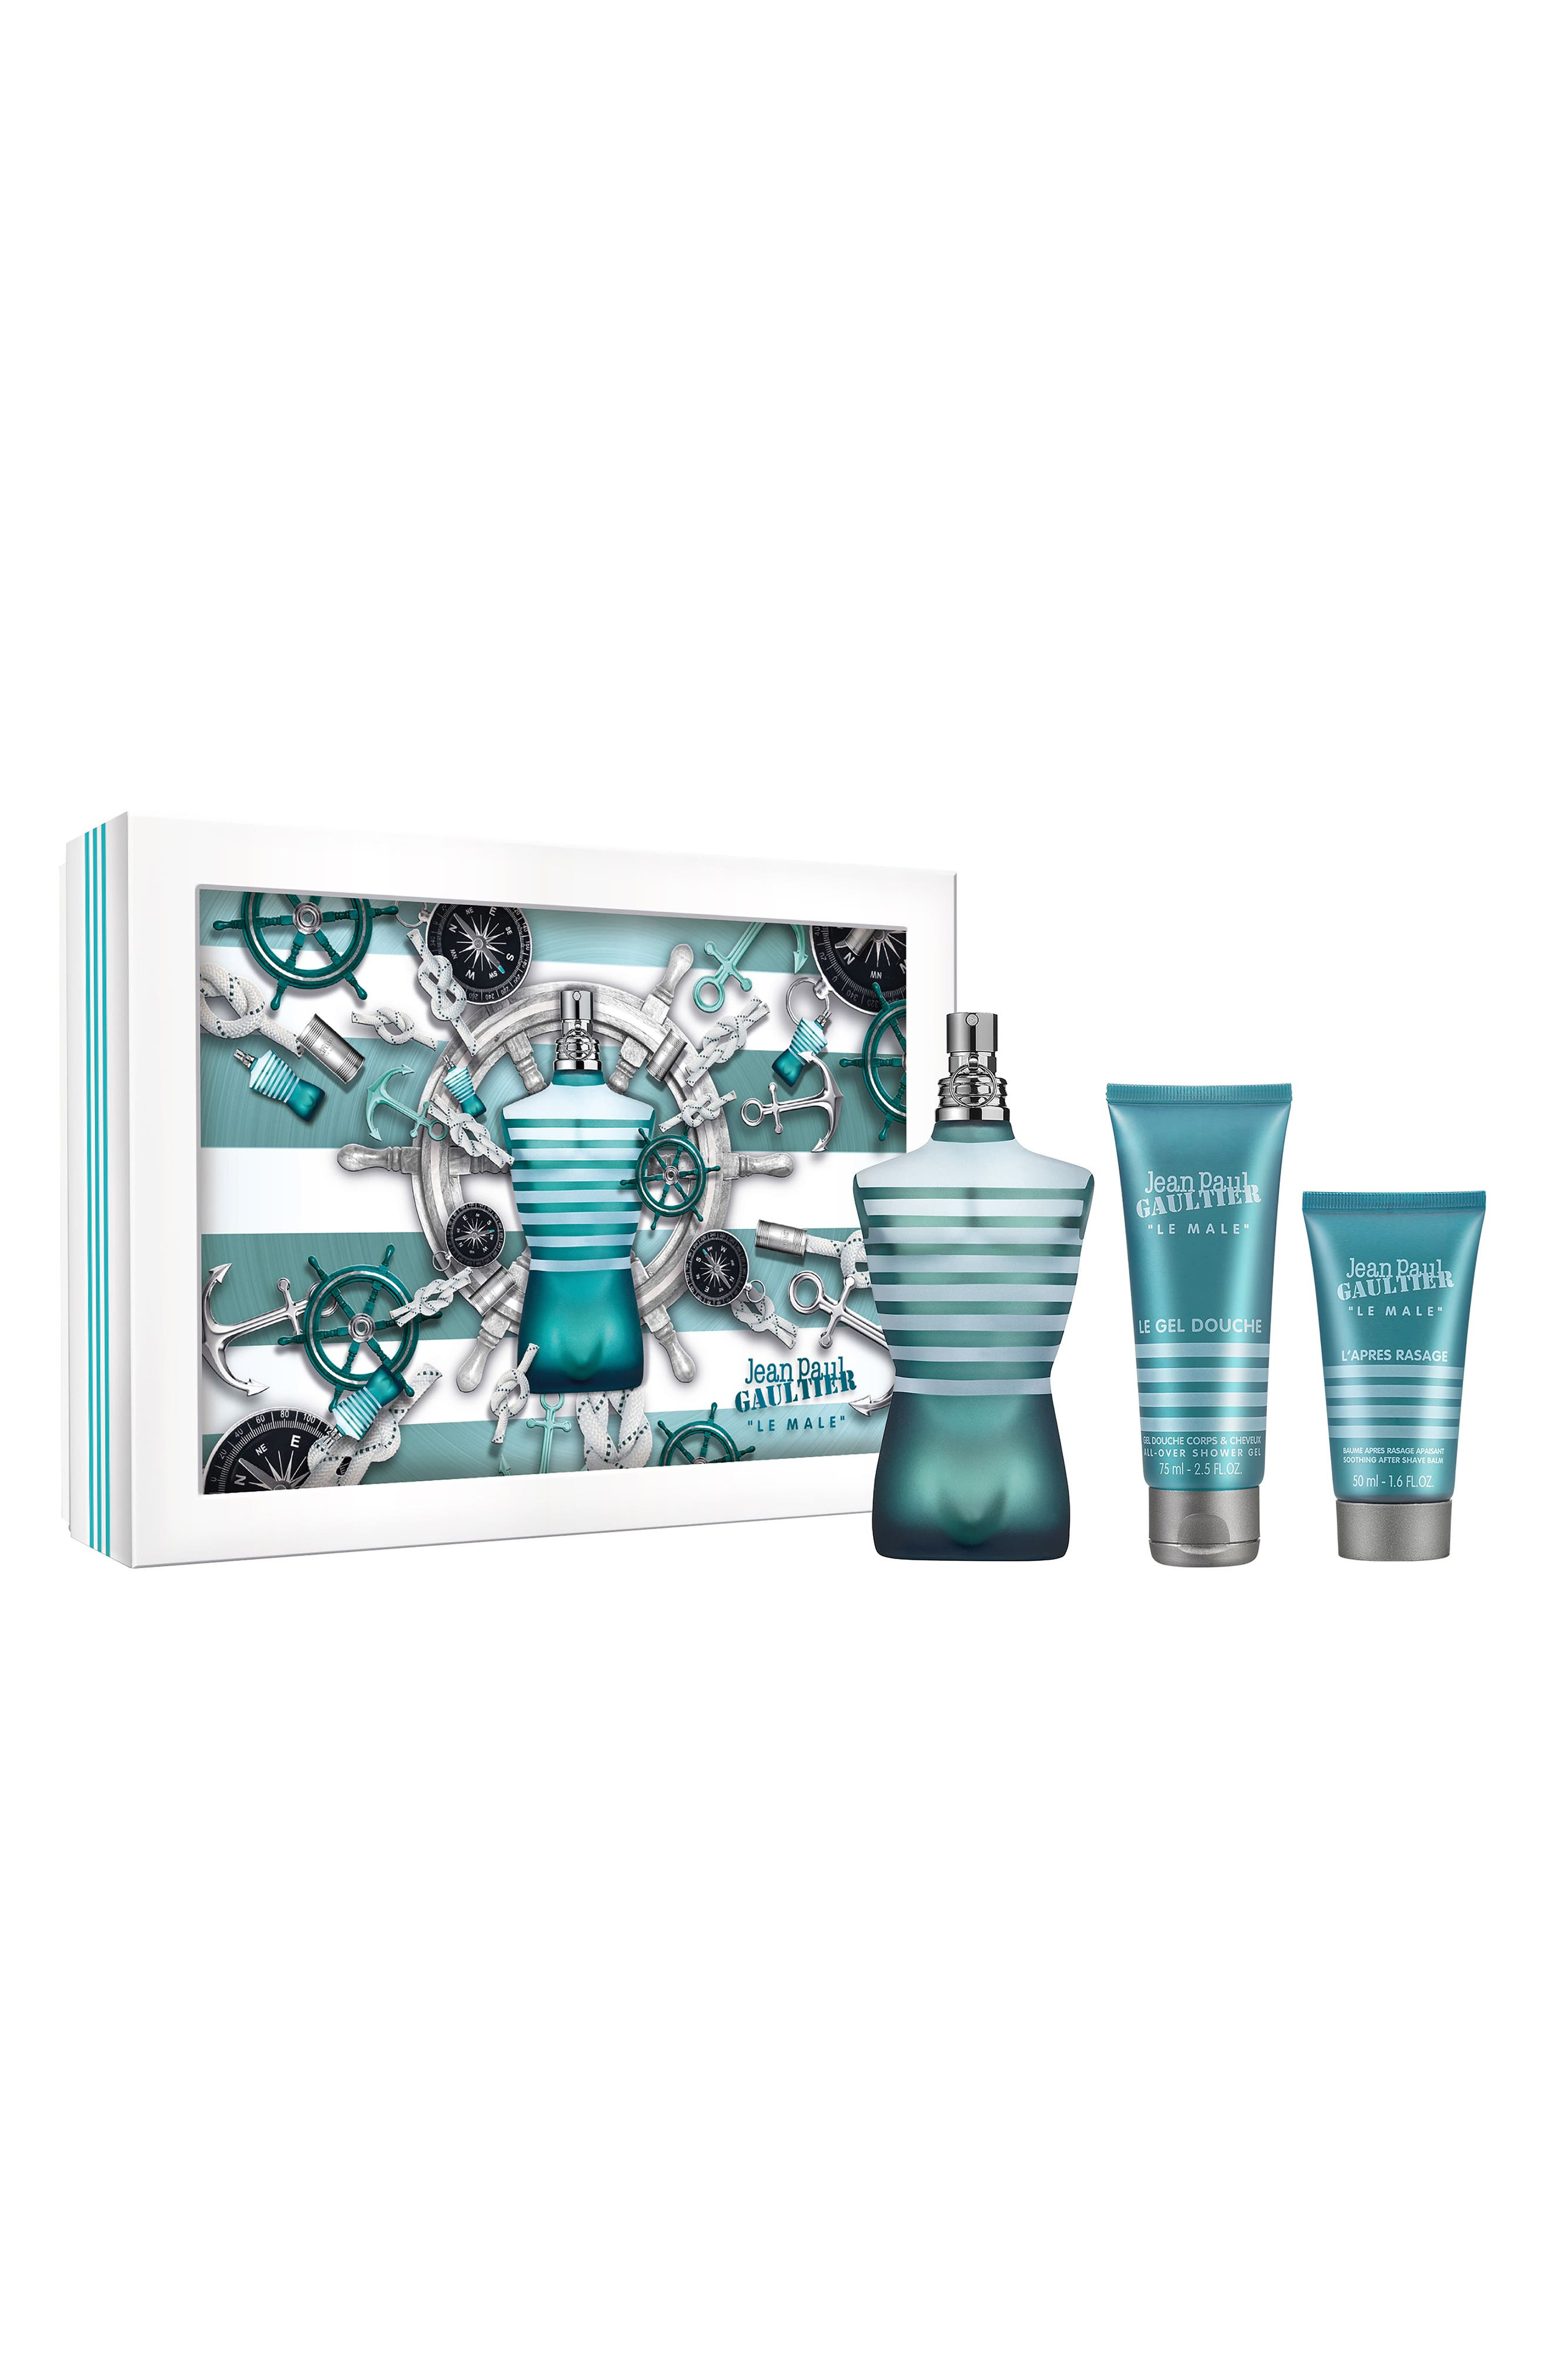 Jean Paul Gaultier Le Male Set ($131 Value)